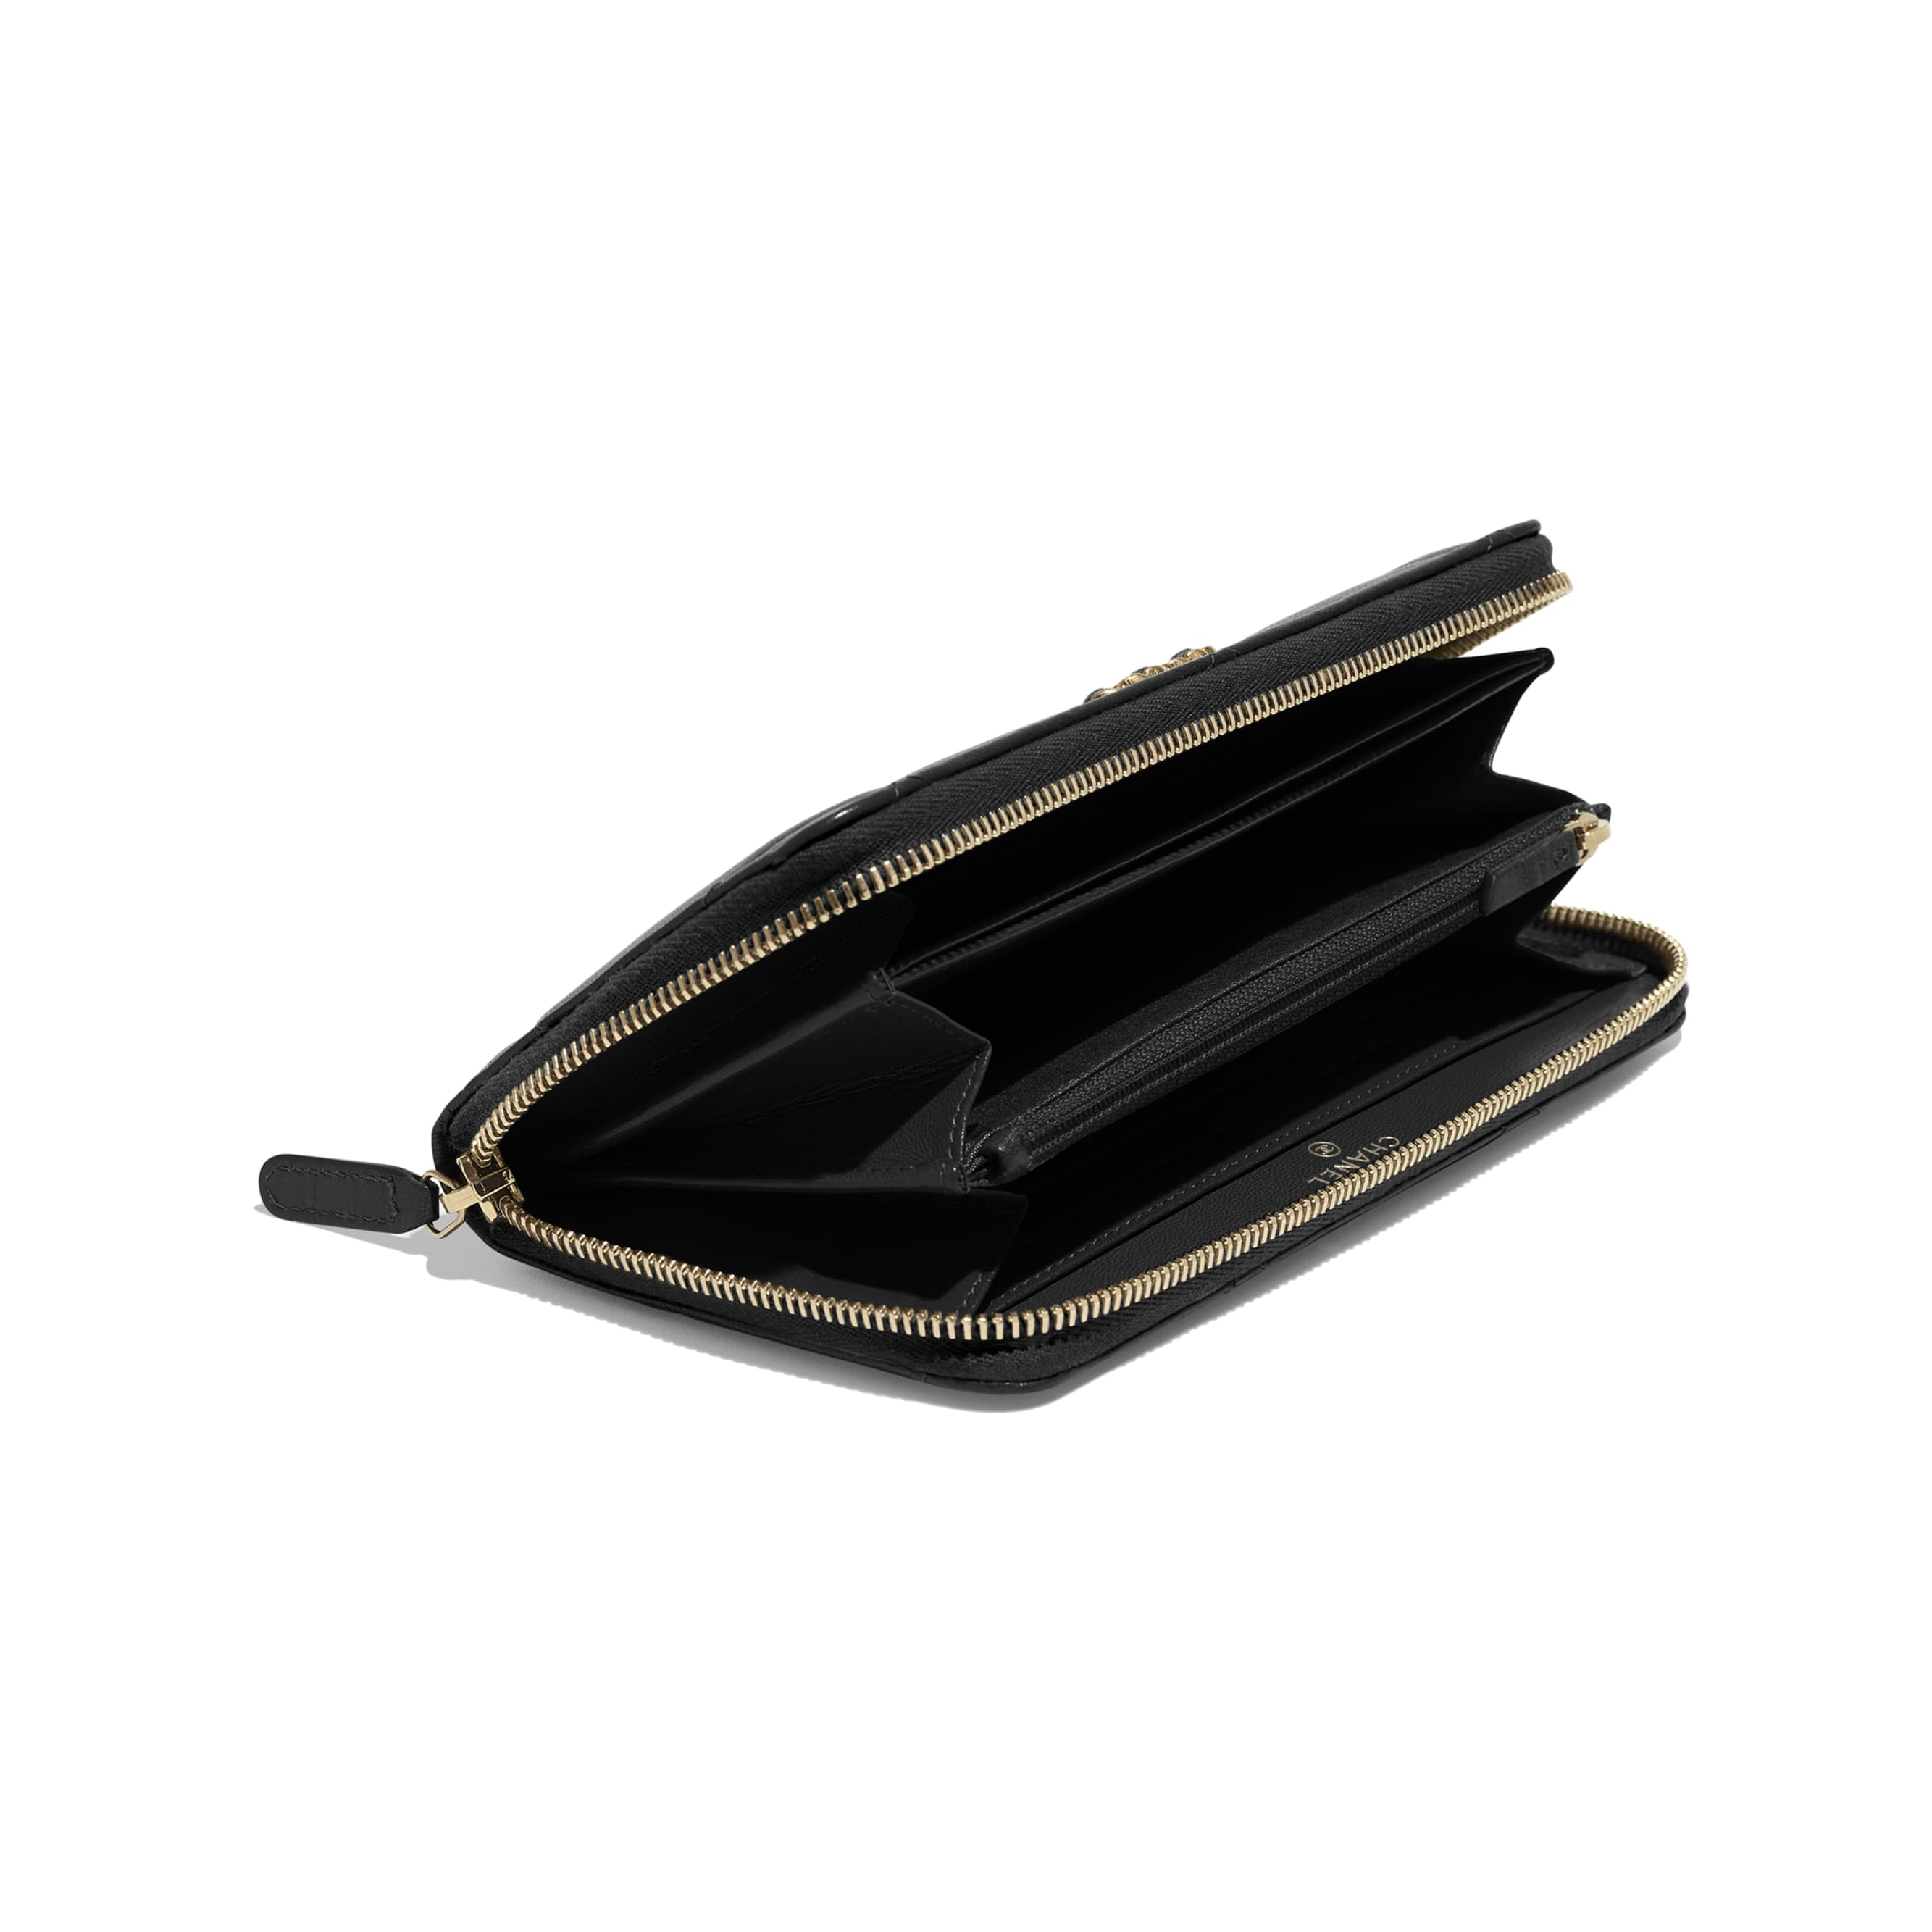 CHANEL 19 Long Zipped Wallet - Black - Goatskin, Gold-Tone, Silver-Tone & Ruthenium-Finish Metal - Extra view - see standard sized version